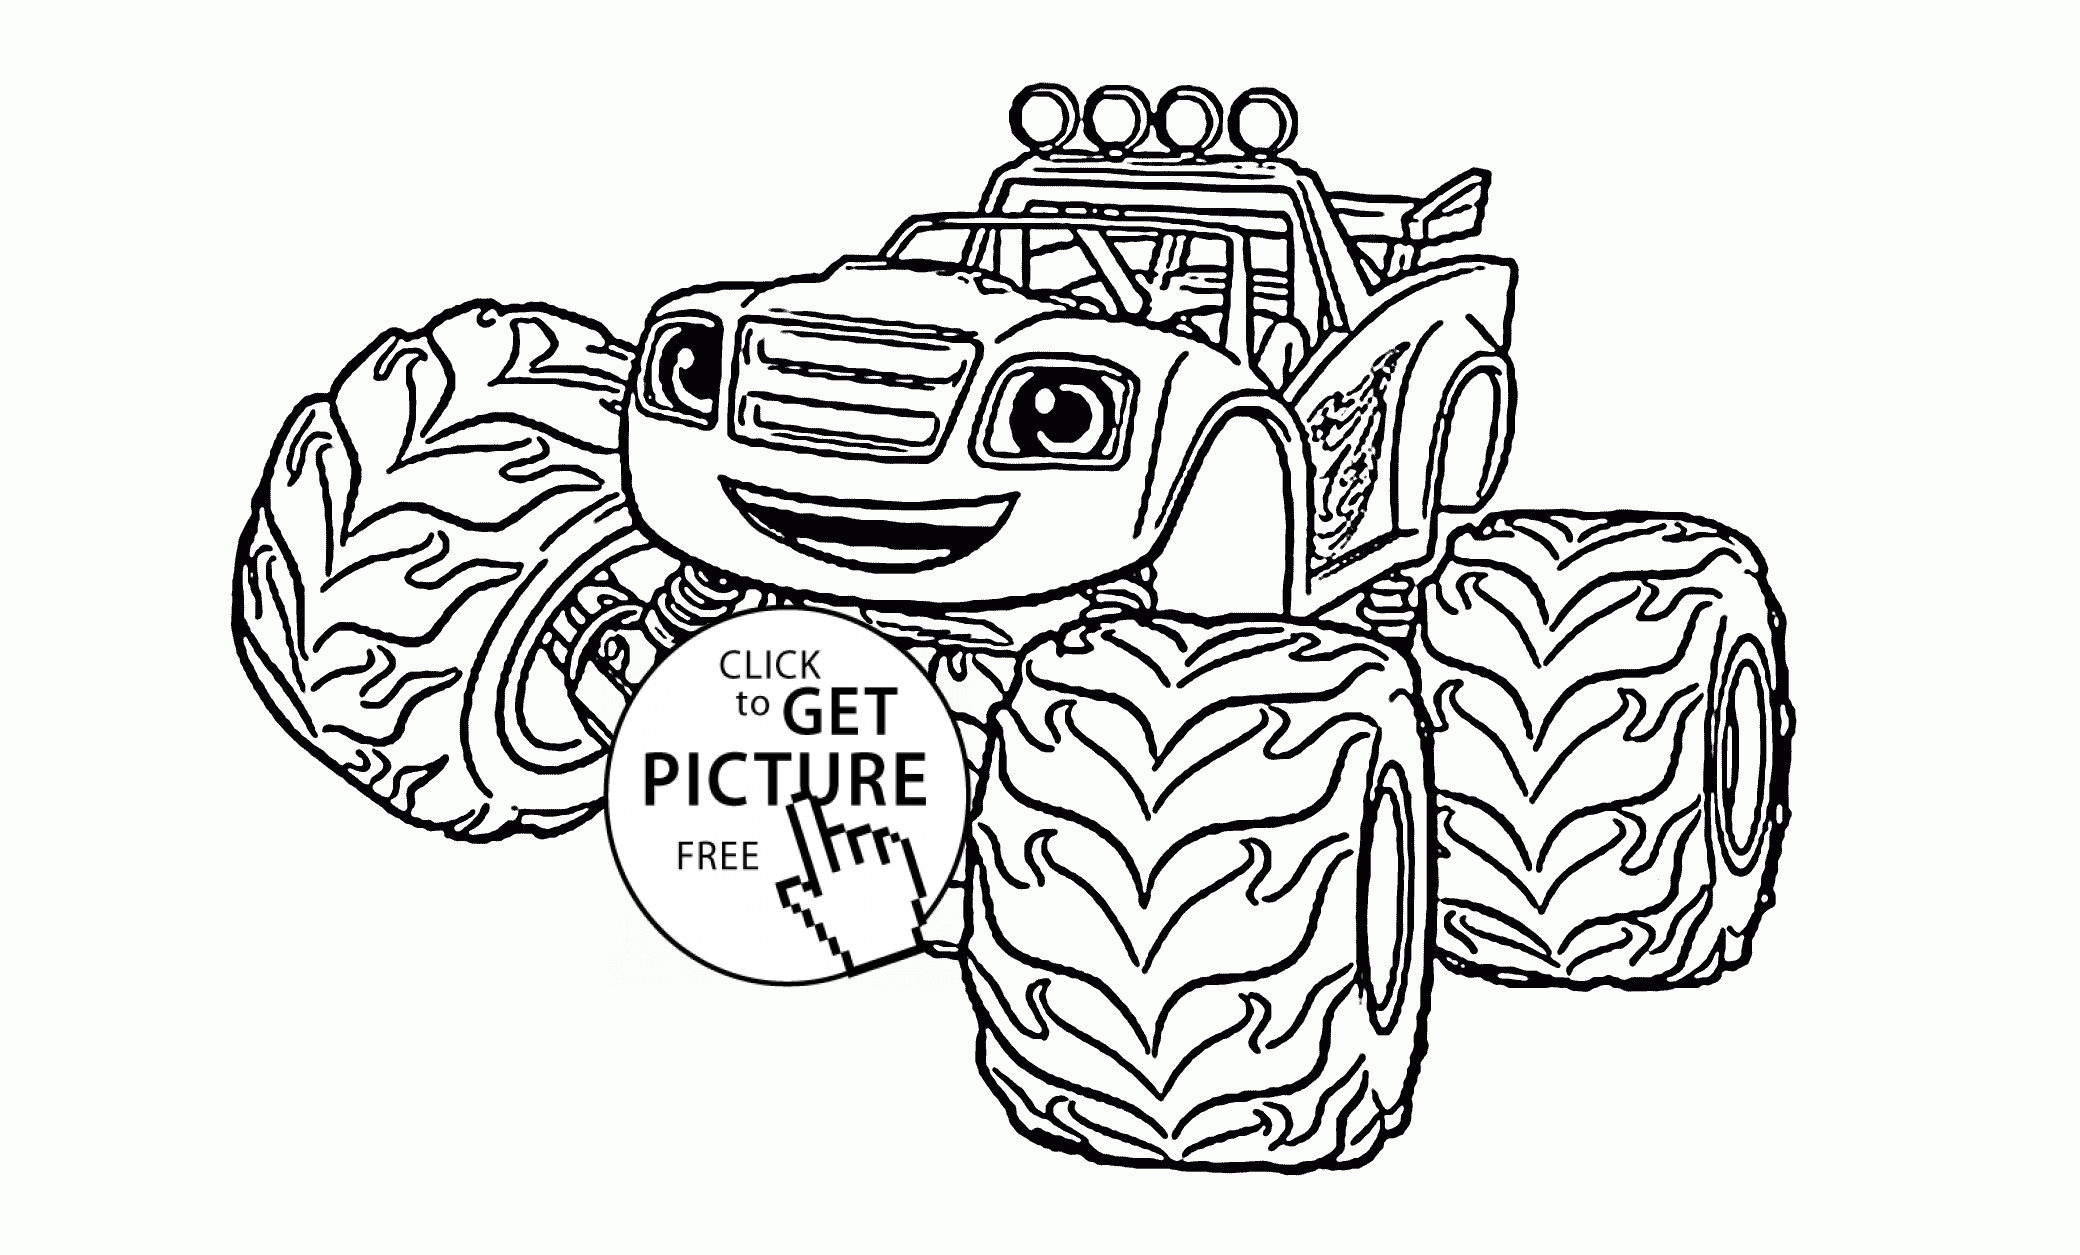 Blaze and the Monster Machines Coloring Pages  Collection 8i - Free For Children